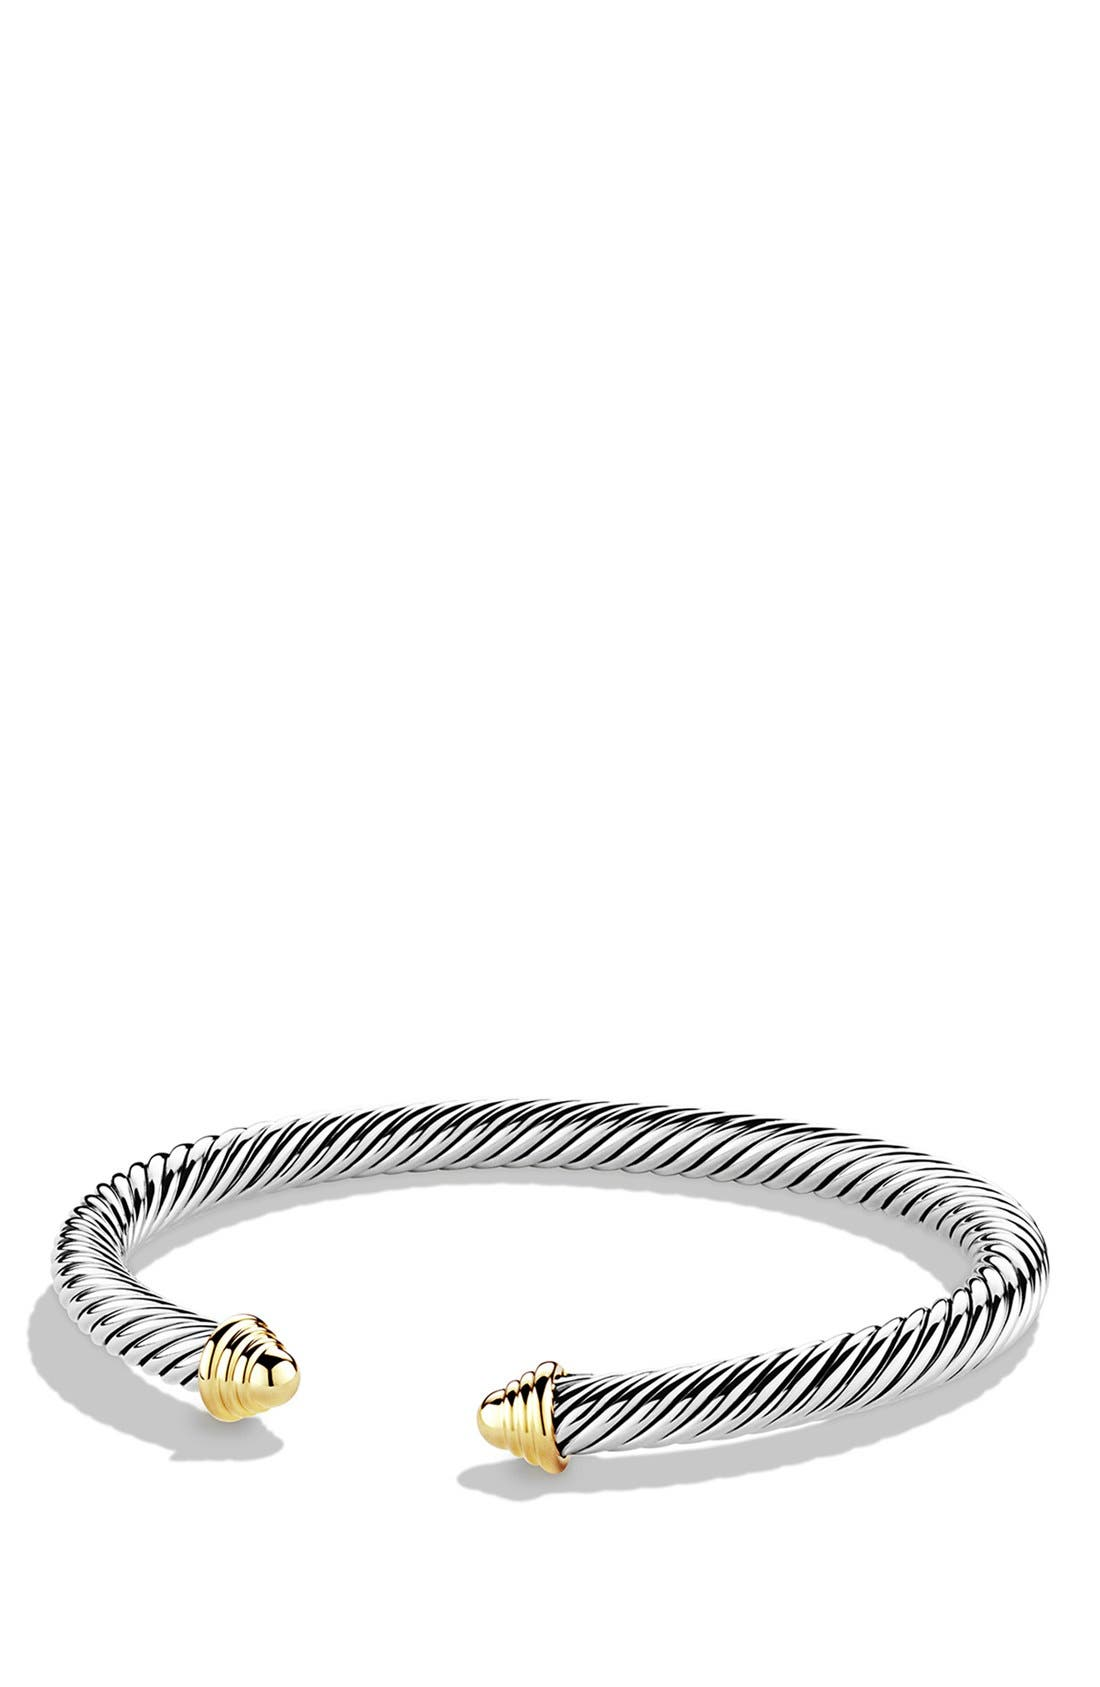 DAVID YURMAN Cable Classics Bracelet with 14K Gold, 5mm, Main, color, TWO TONE